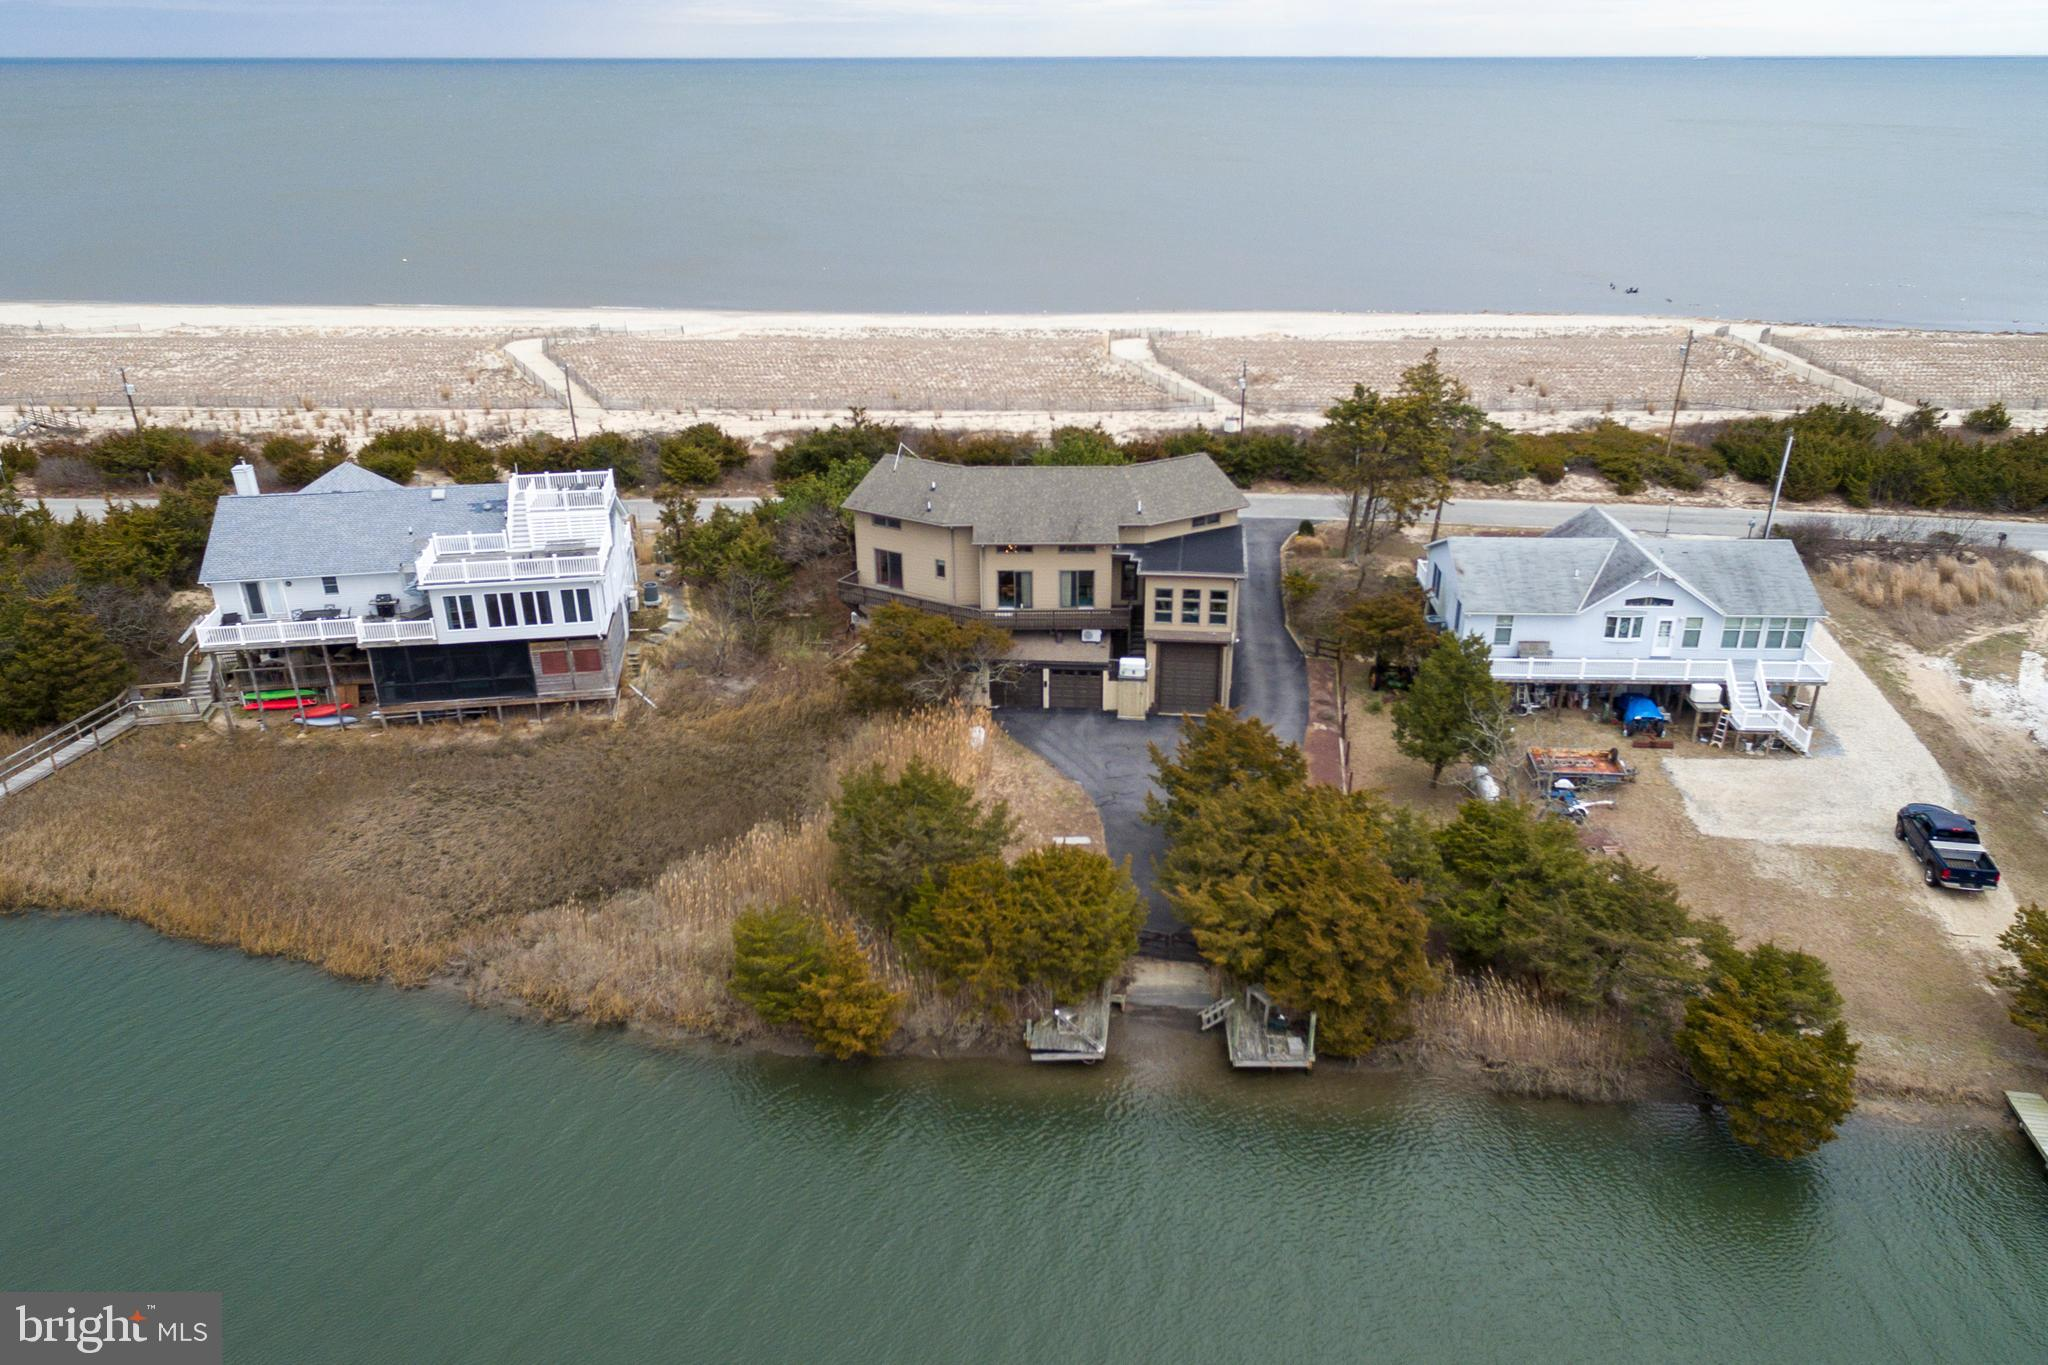 """Enjoy endless sunrises & sunsets from one of Broadkill Beach's most rare waterfront lots that span from the bay to the refuge with water access to the Delaware Bay.   This custom built 3 bedroom home with den/4th bedroom, sunroom and office is a diamond in the rough awaiting your imagination.  Enter to a dramatic 2 story great room with spiral staircase that is flanked by decks which offer incredible views of the Delaware Bay and Prime Hook Wildlife Refuge.  Sunlight streams through the multiple skylights, the perfect start to your day.   The next lucky owners will be delighted to have a boat ramp and dock (DNREC approved) in the back yard, 2 car garage, multi-use high ceiling (boat) garage, extensive heated workshop on lower level (not included in square footage) and a whole house propane generator.  The home has been loved by one family and well maintained over the years (new roof 2003, new HVAC 2017) but is offered in """"as is"""" condition. The septic system has been recently inspected and is in good working order."""